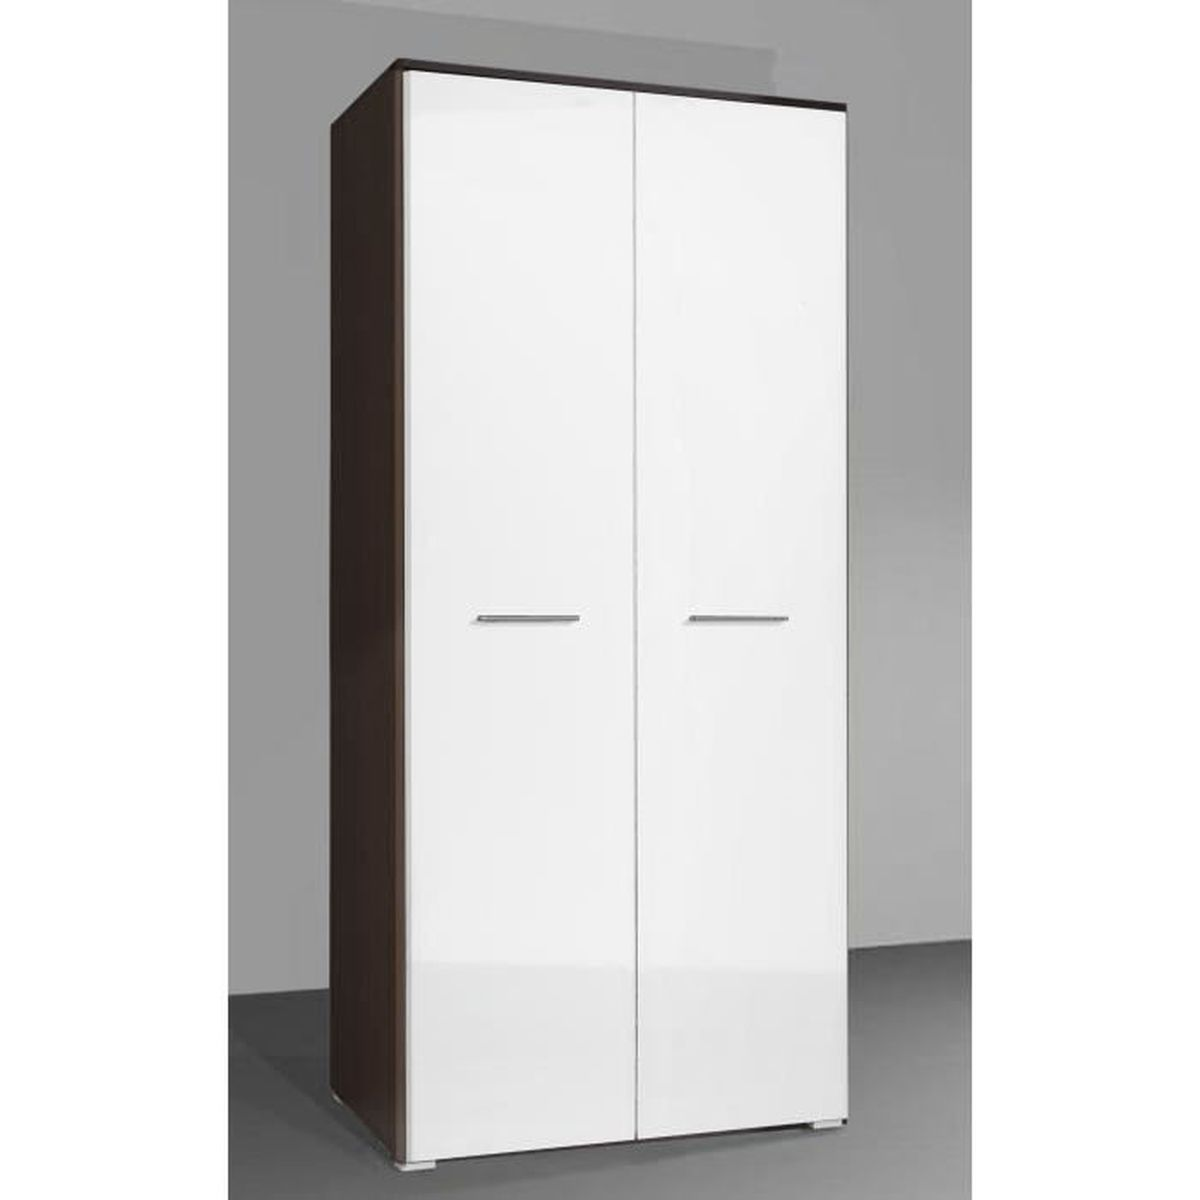 armoire design safa bois fonc blanc achat vente armoire de chambre armoire design safa bois. Black Bedroom Furniture Sets. Home Design Ideas